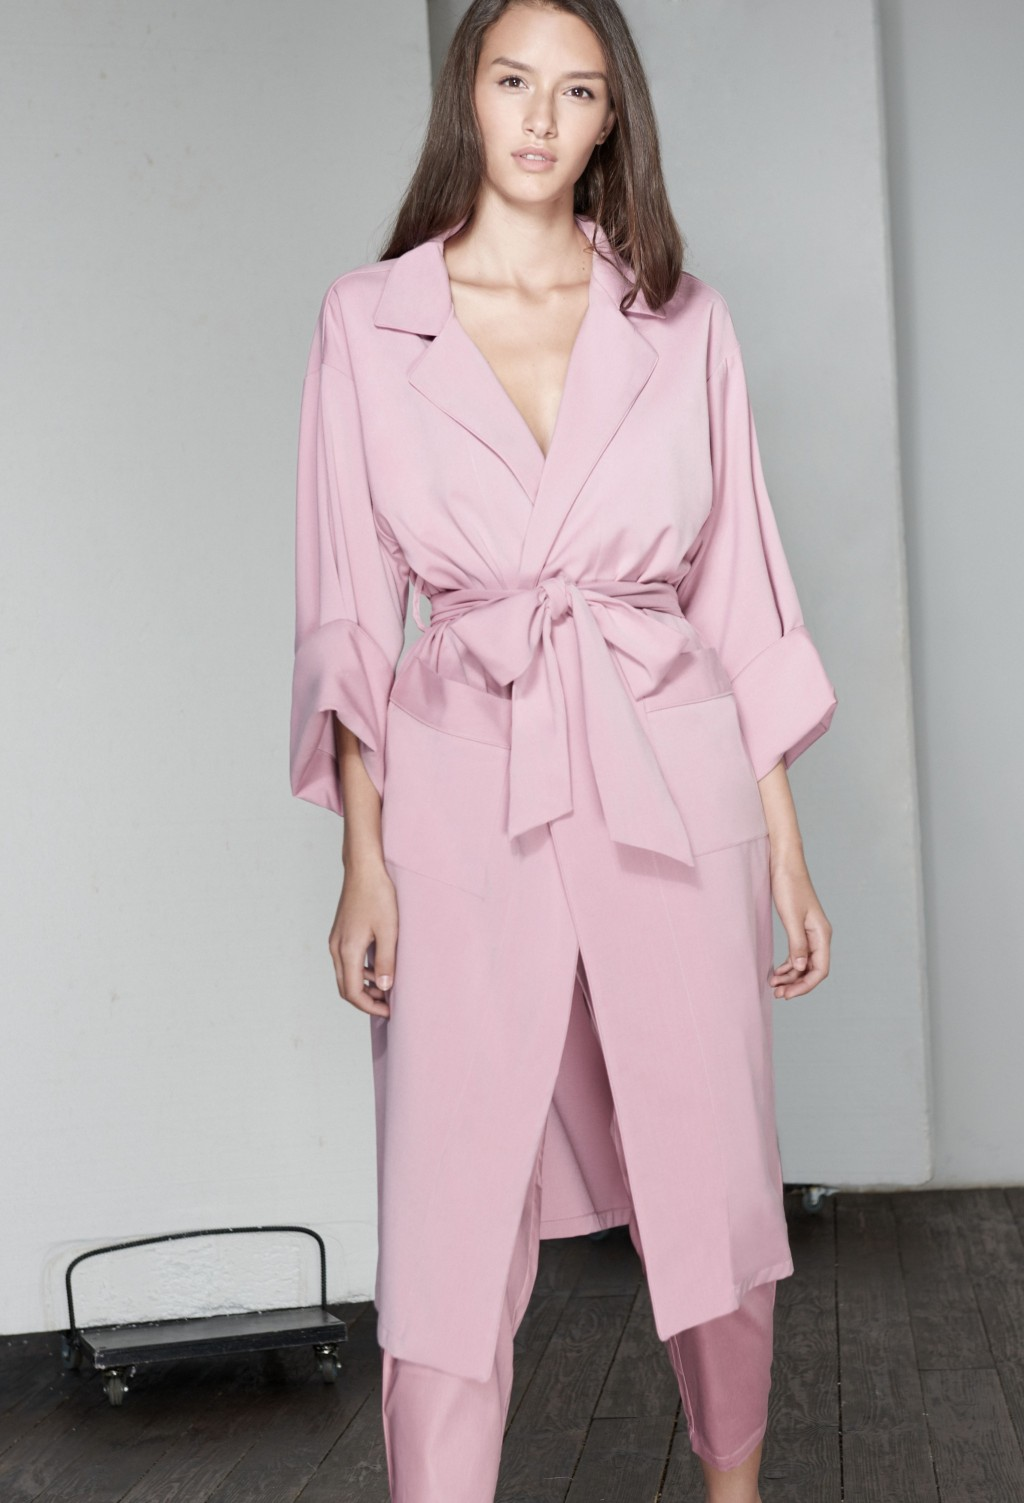 Pajamas So Stylish You'll Want to Wear Them Outside